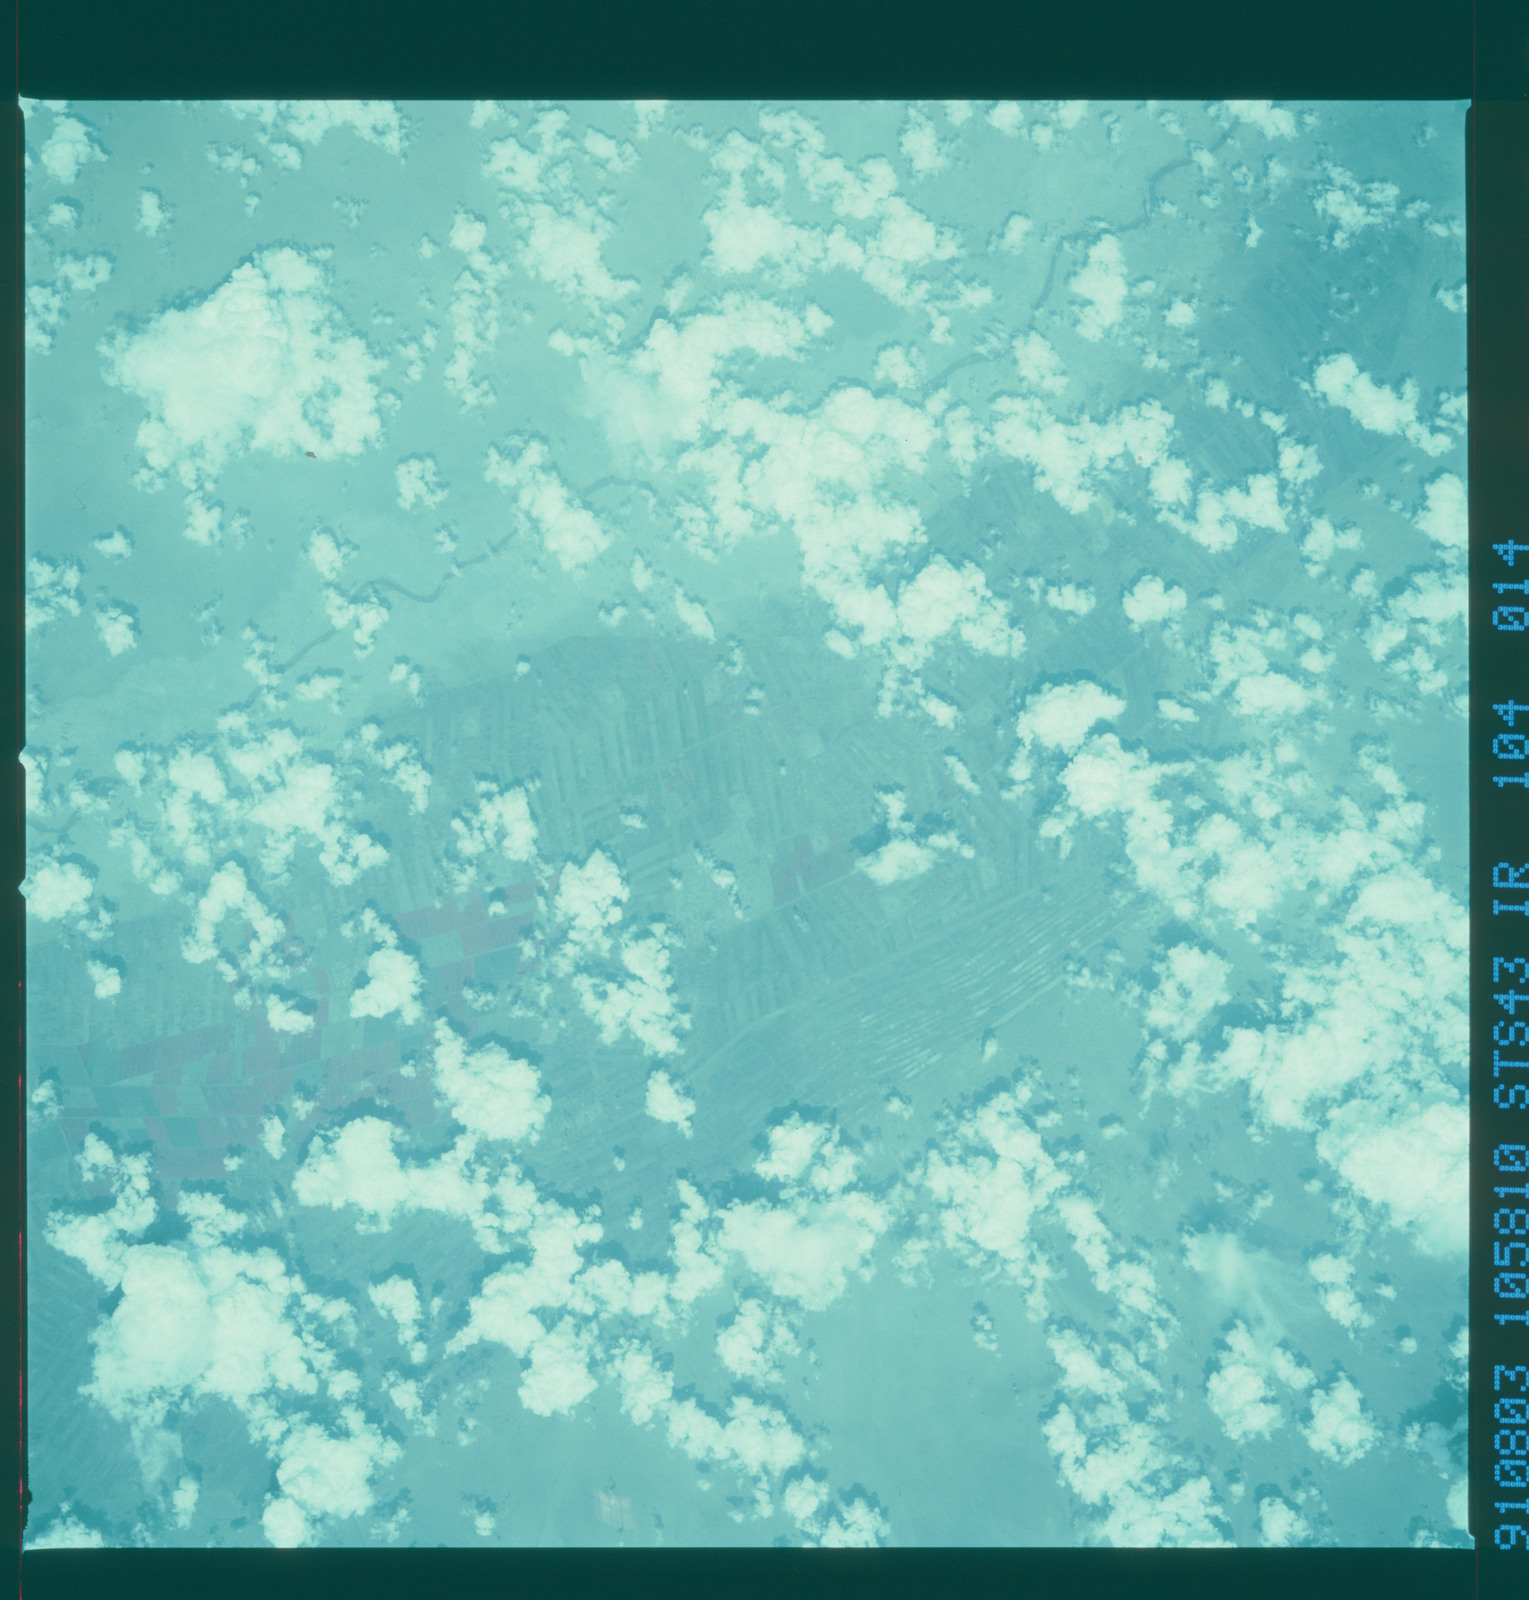 S43-104-014 - STS-043 - STS-43 earth observations